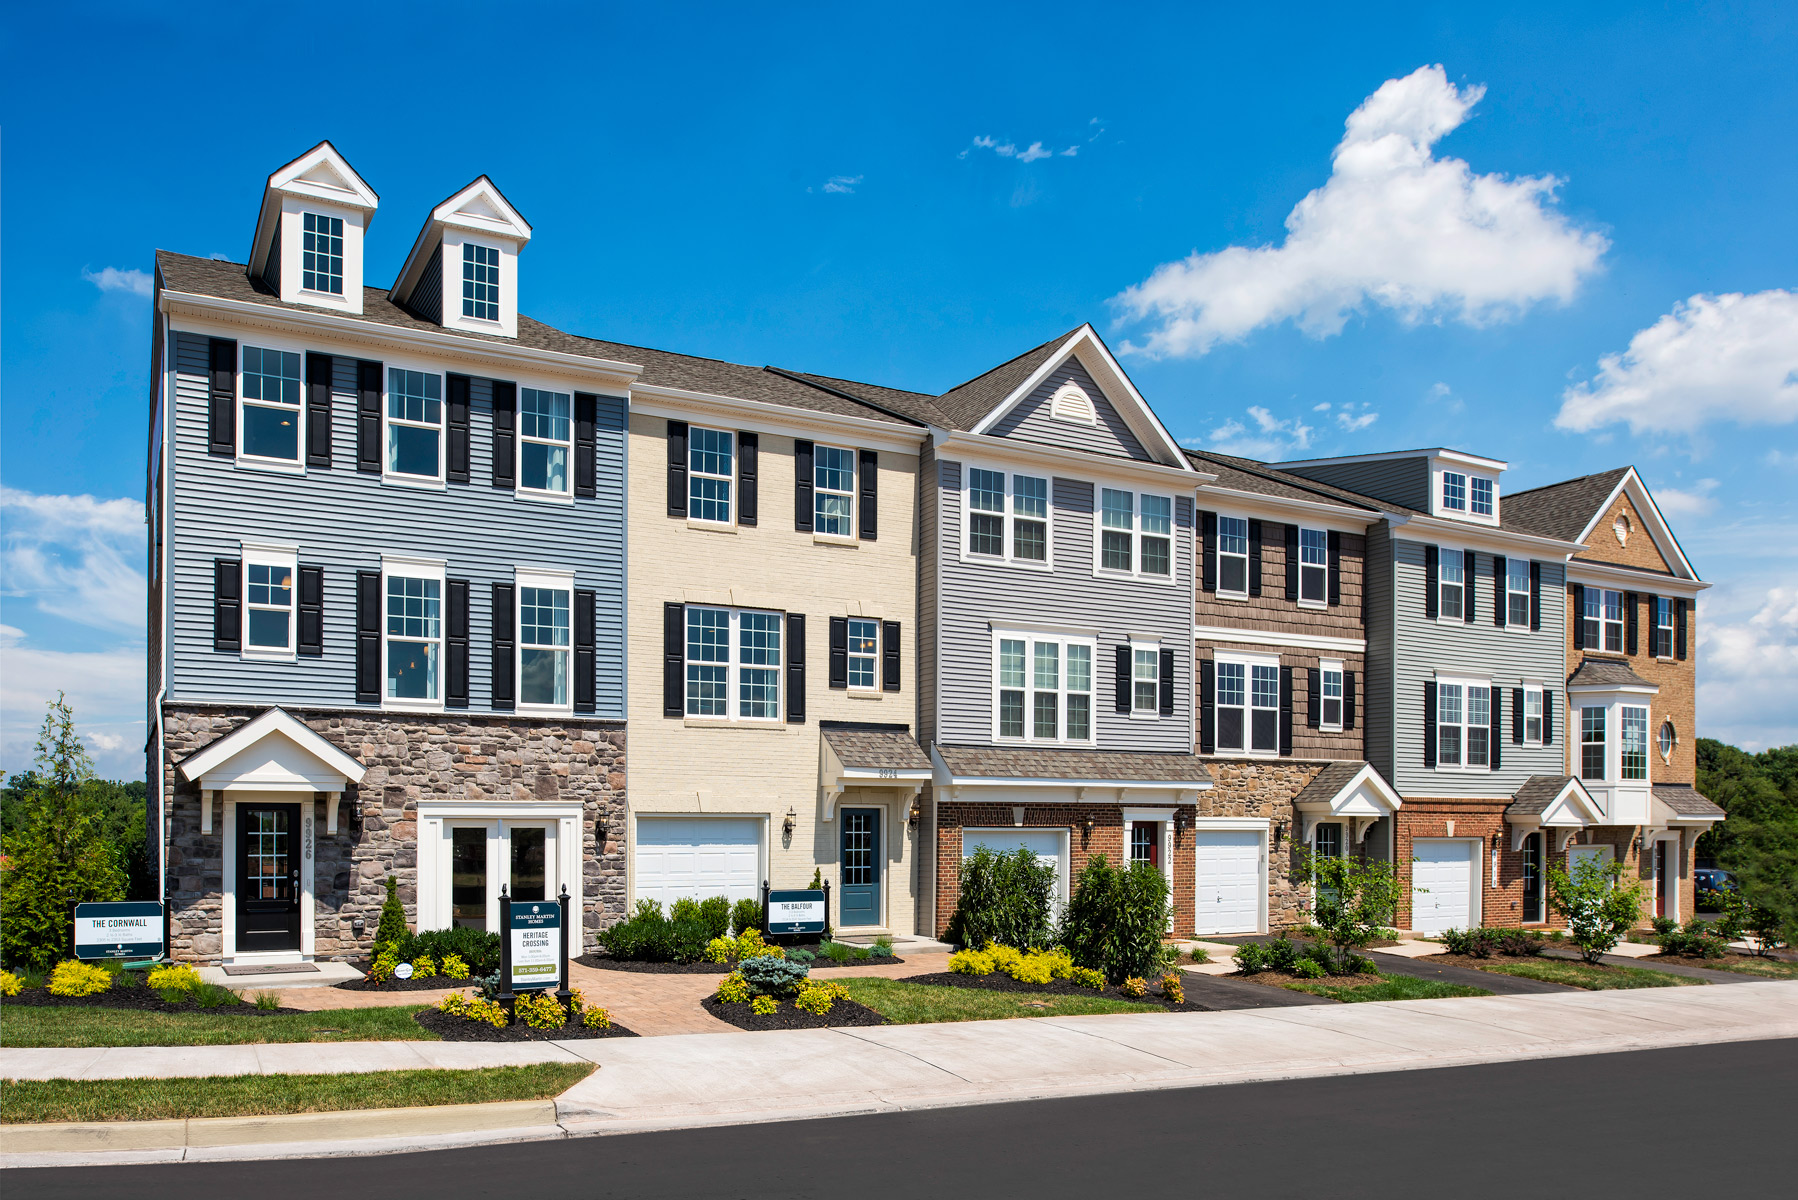 Stanley martin homes introduces new section of townhomes for Builders in va